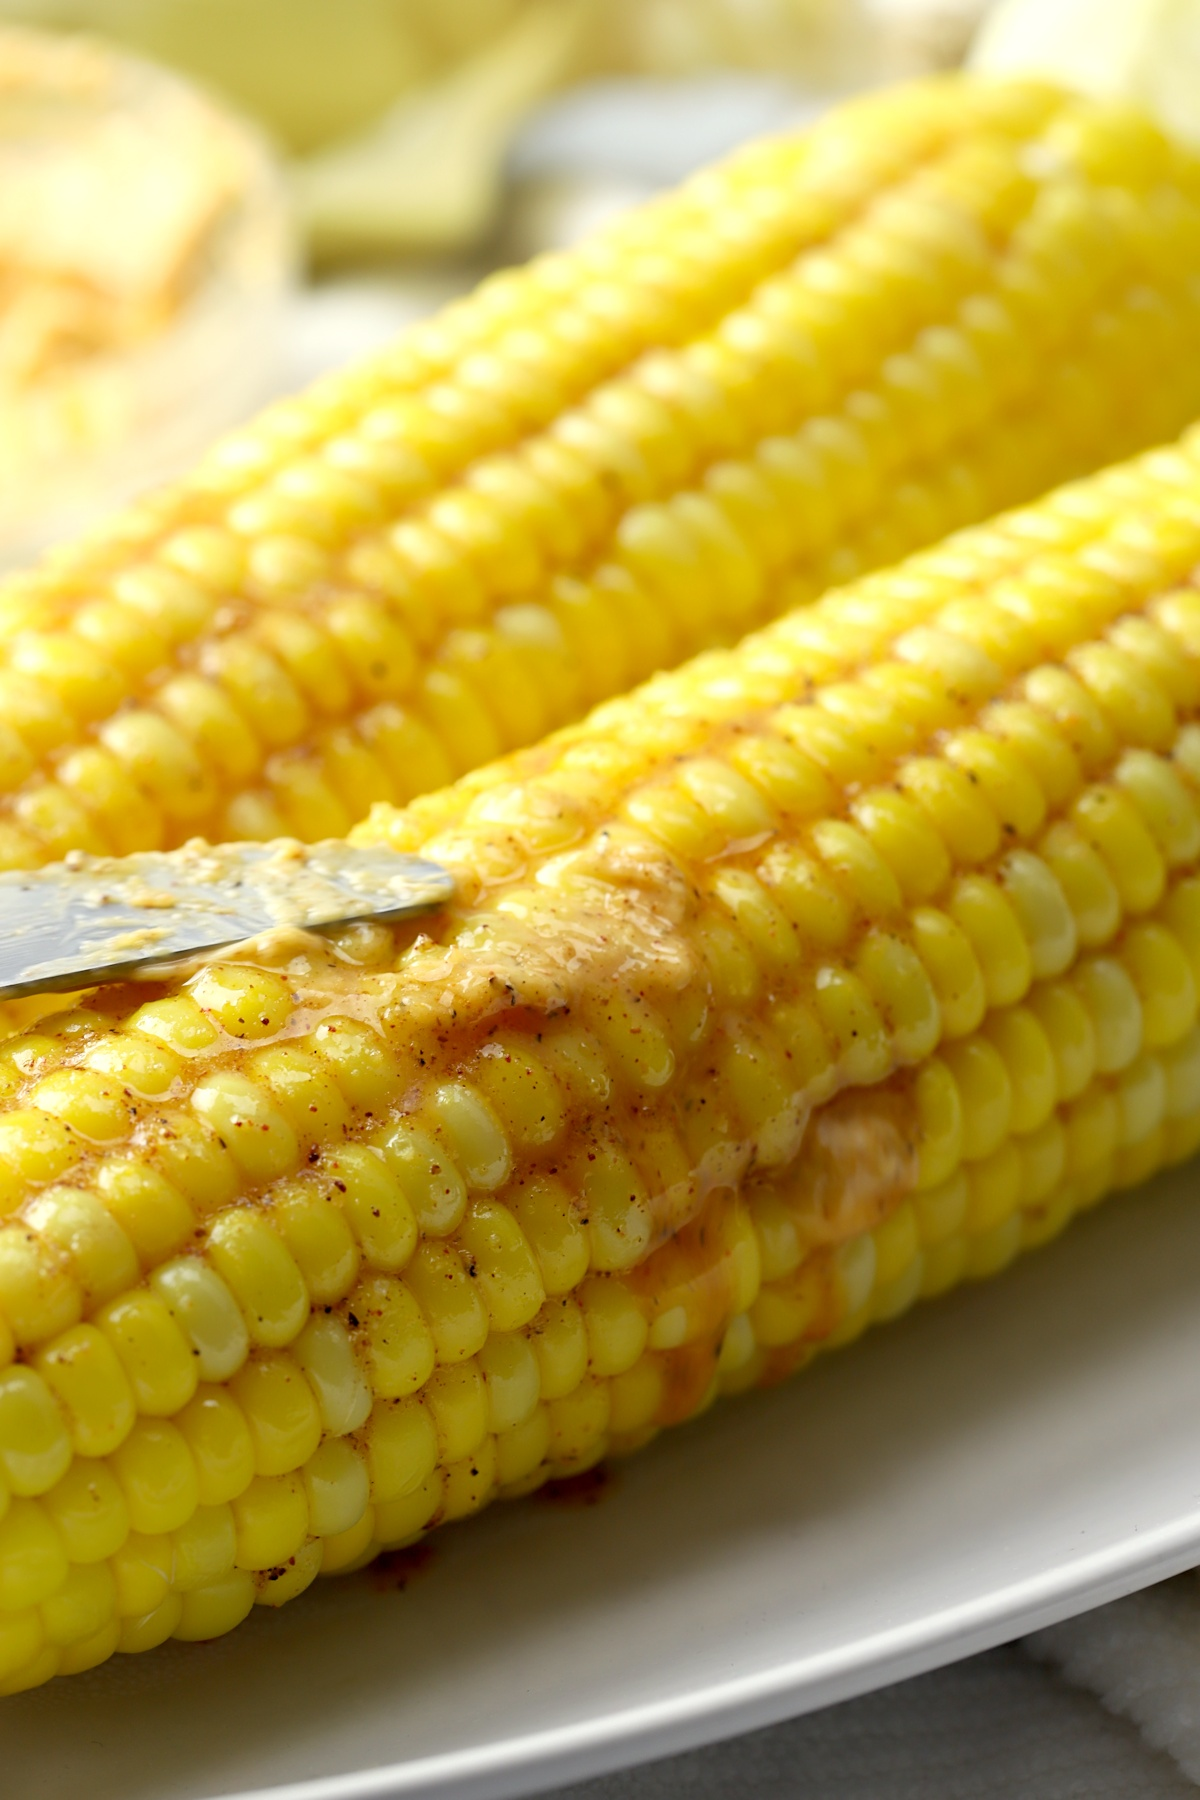 Spreading butter on an ear of corn.